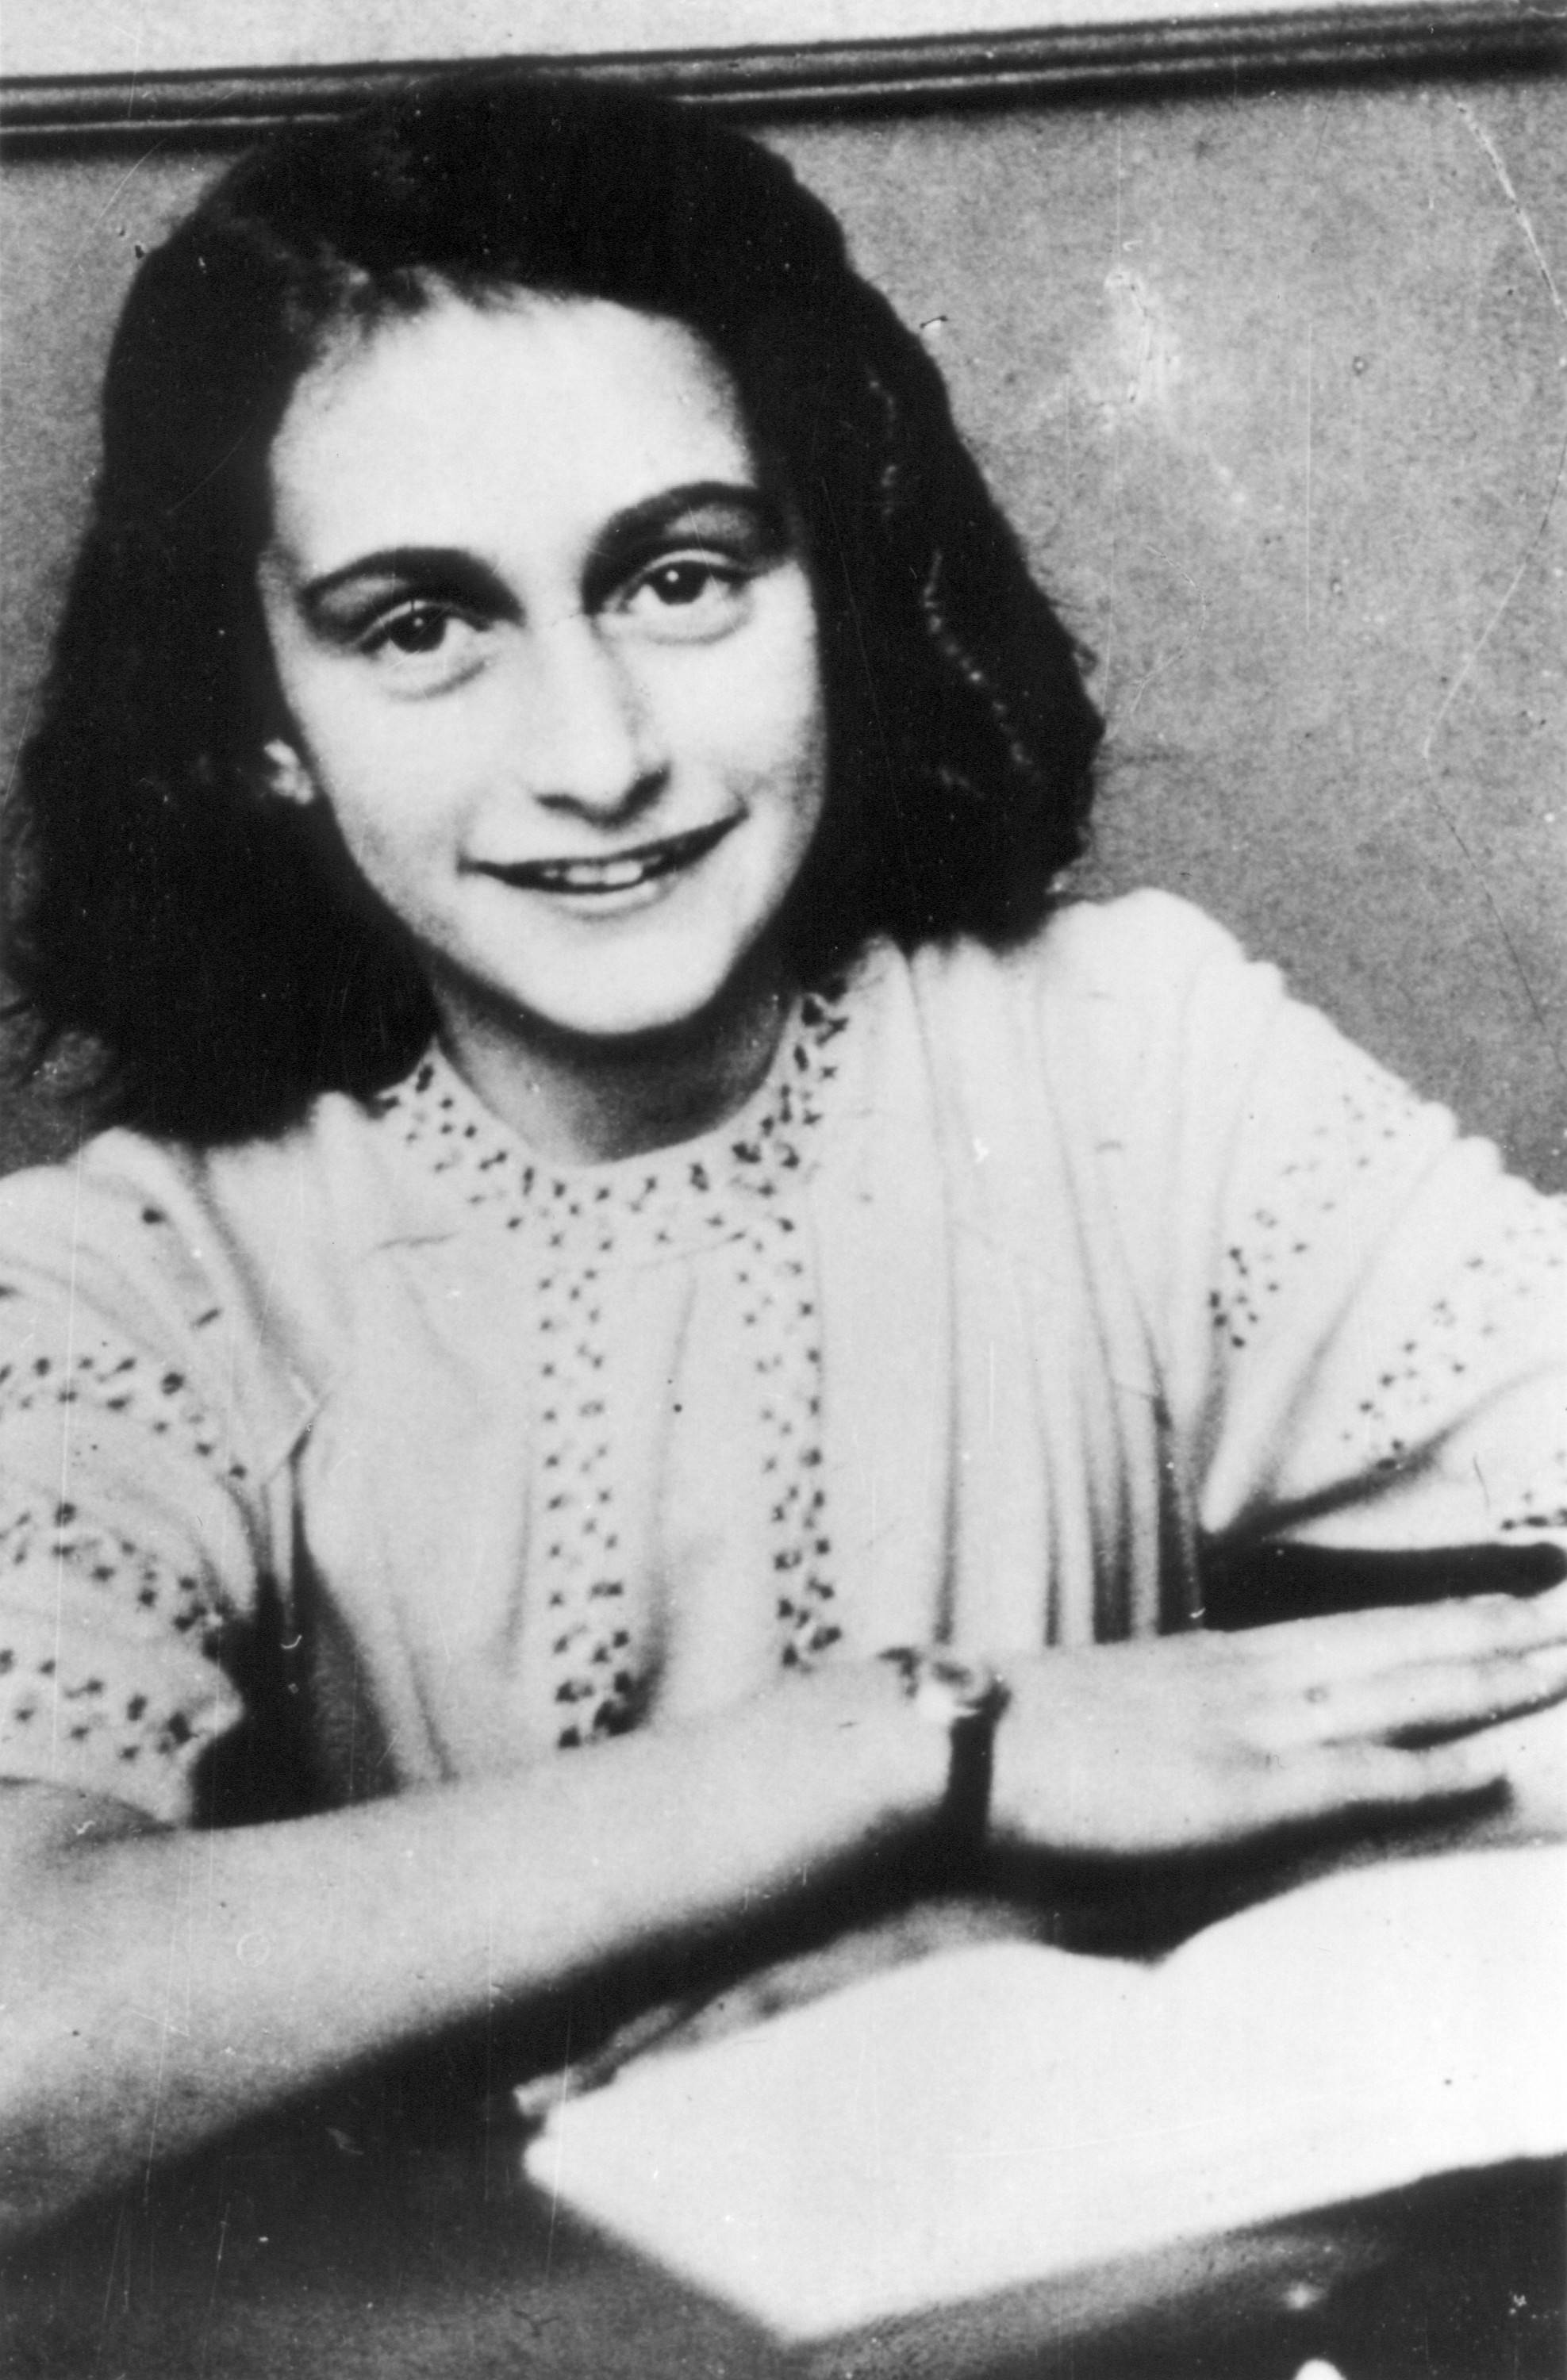 The story of Anne Frank, the young Jewish girl who chronicled her short life in a diary before dying in a Nazi concentration camp during World War II, still has the power to inspire people to stand up for minorities and the oppressed.